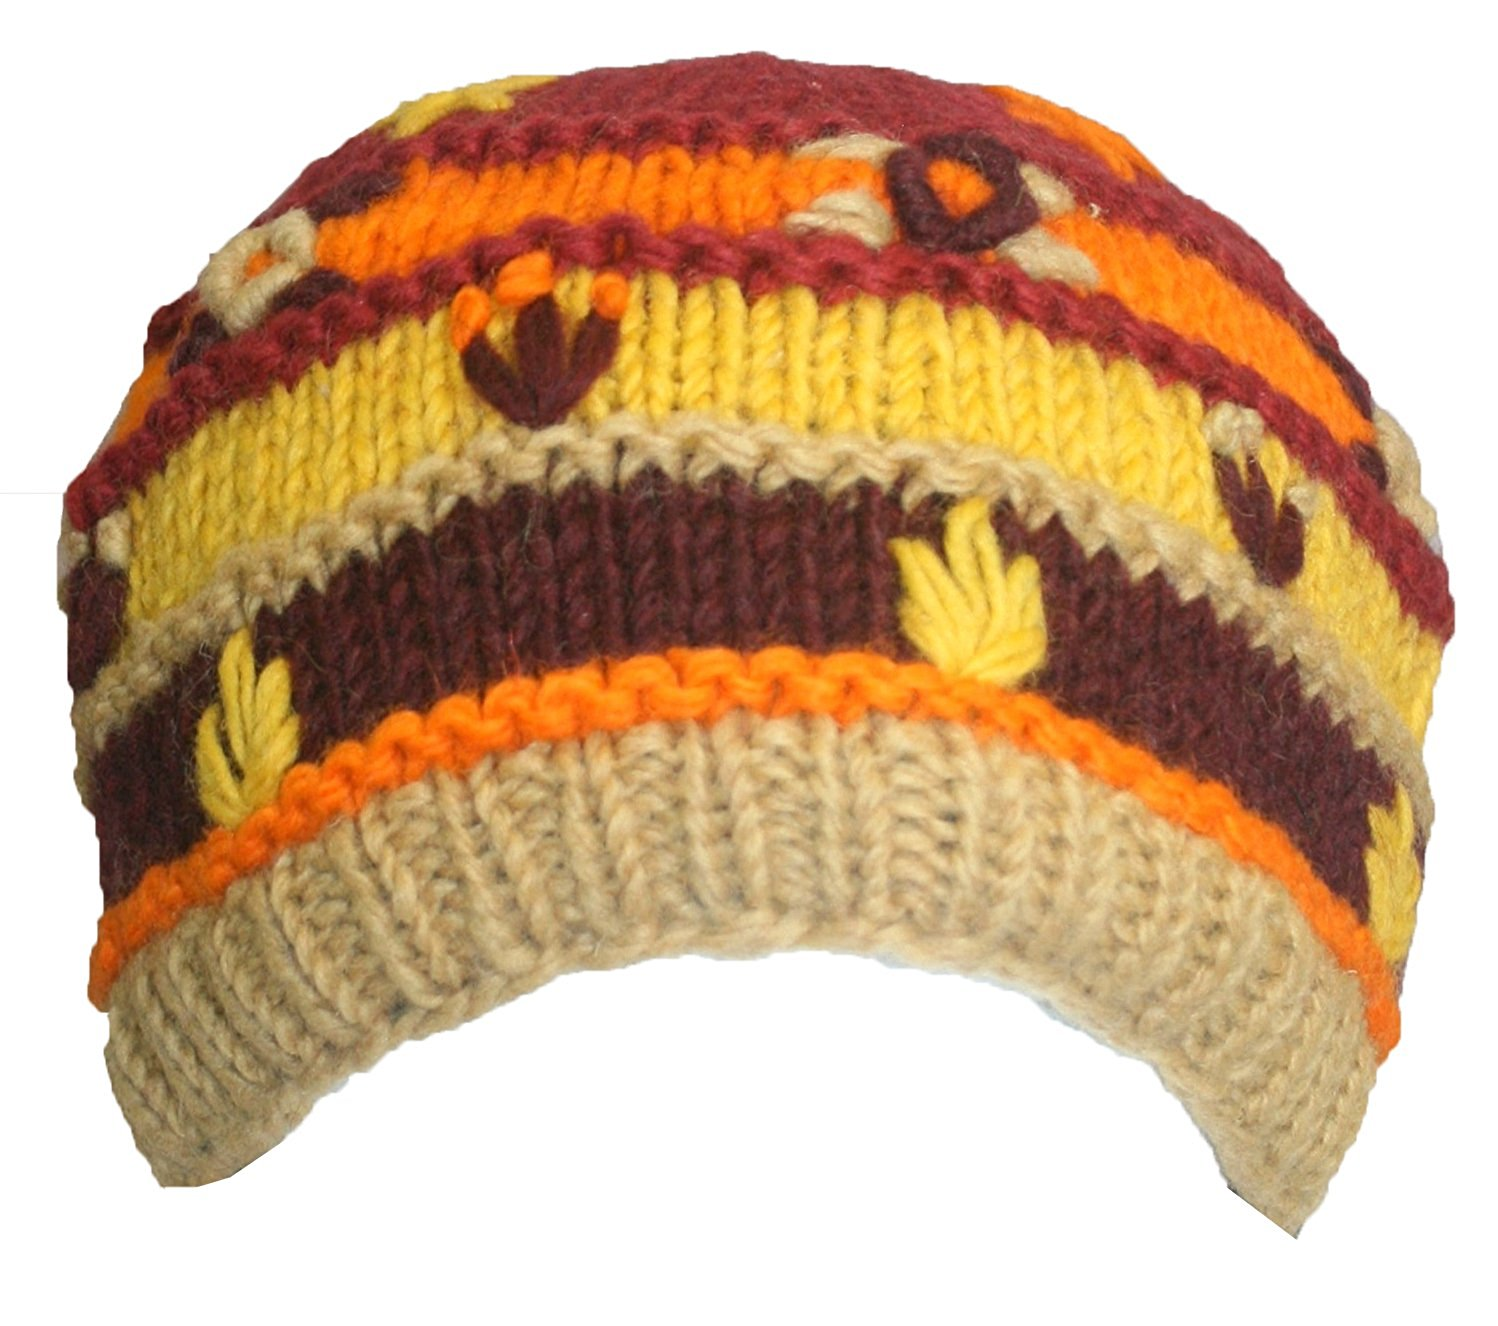 Knit Multi-colored Stripe Crochet Hat OR Mitten OR Folding Mitten Nepal - Agan Traders,  Hat Yellow